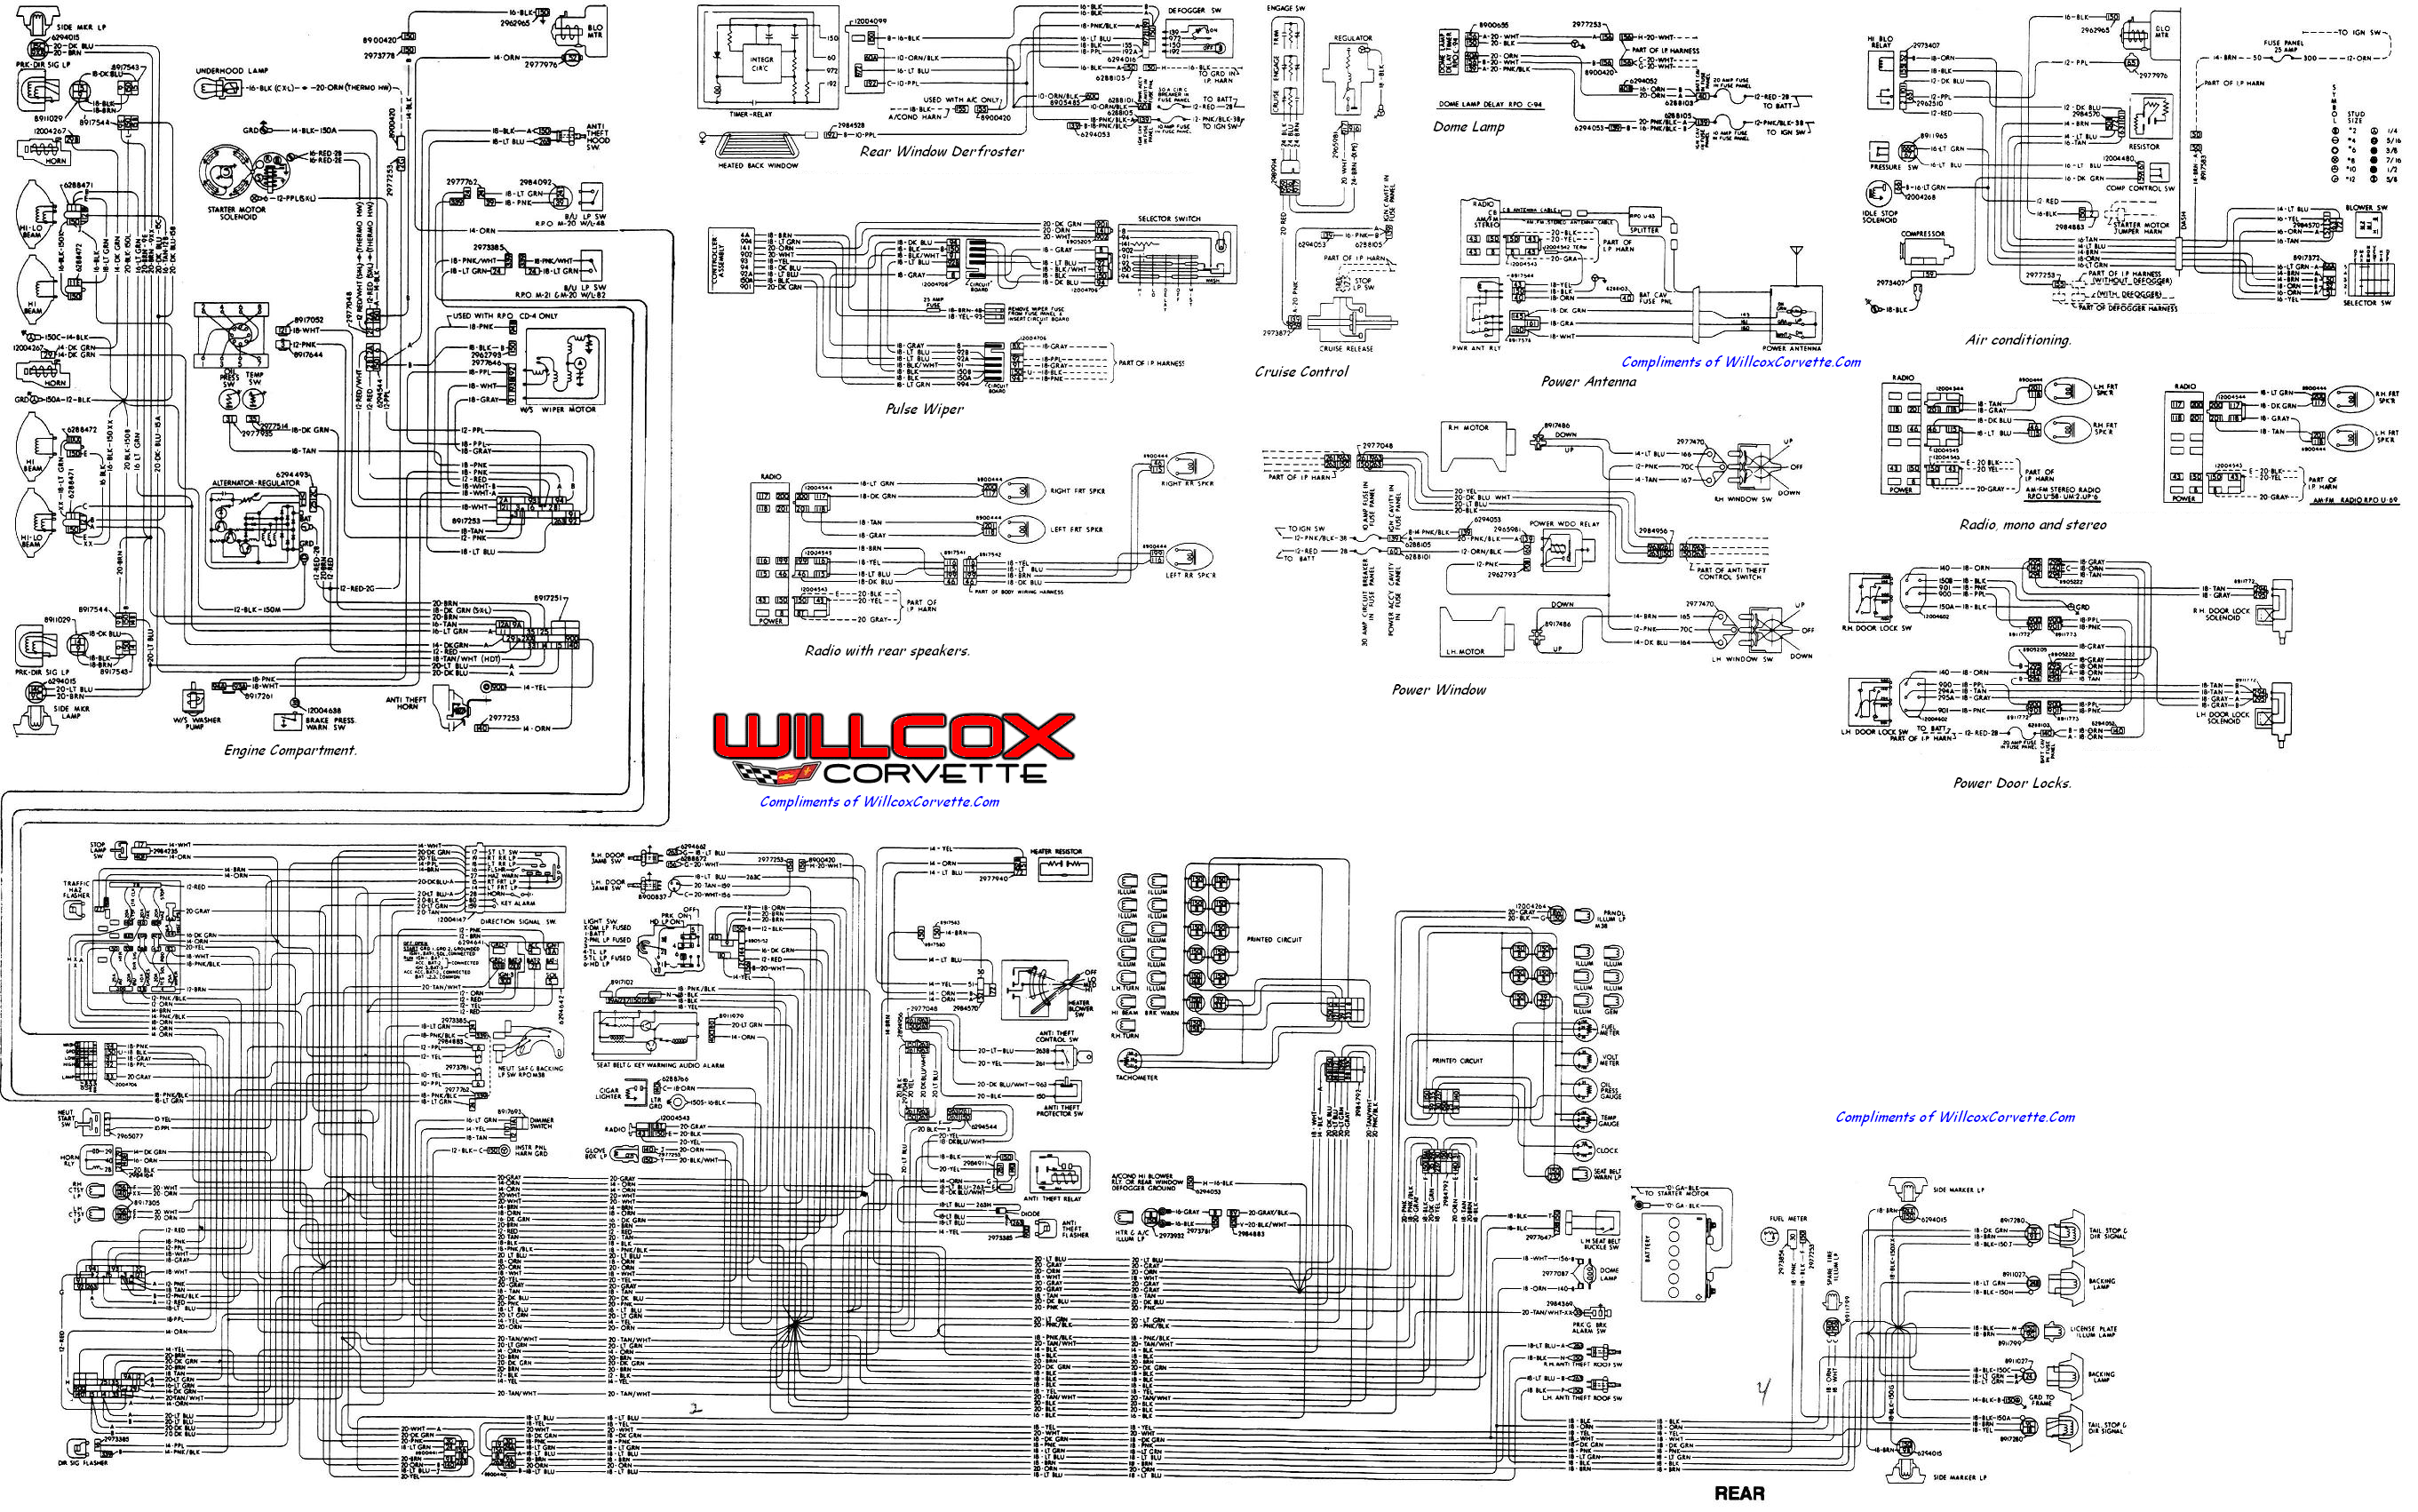 Fuse Box Diagram 2001 Chevrolet Camaro Wiring Diagrams 98 Fiat Bravo 14 Electric 2000 Chevy Corvette Free Download Basic Rh Rnetcomputer Co 1987 1998